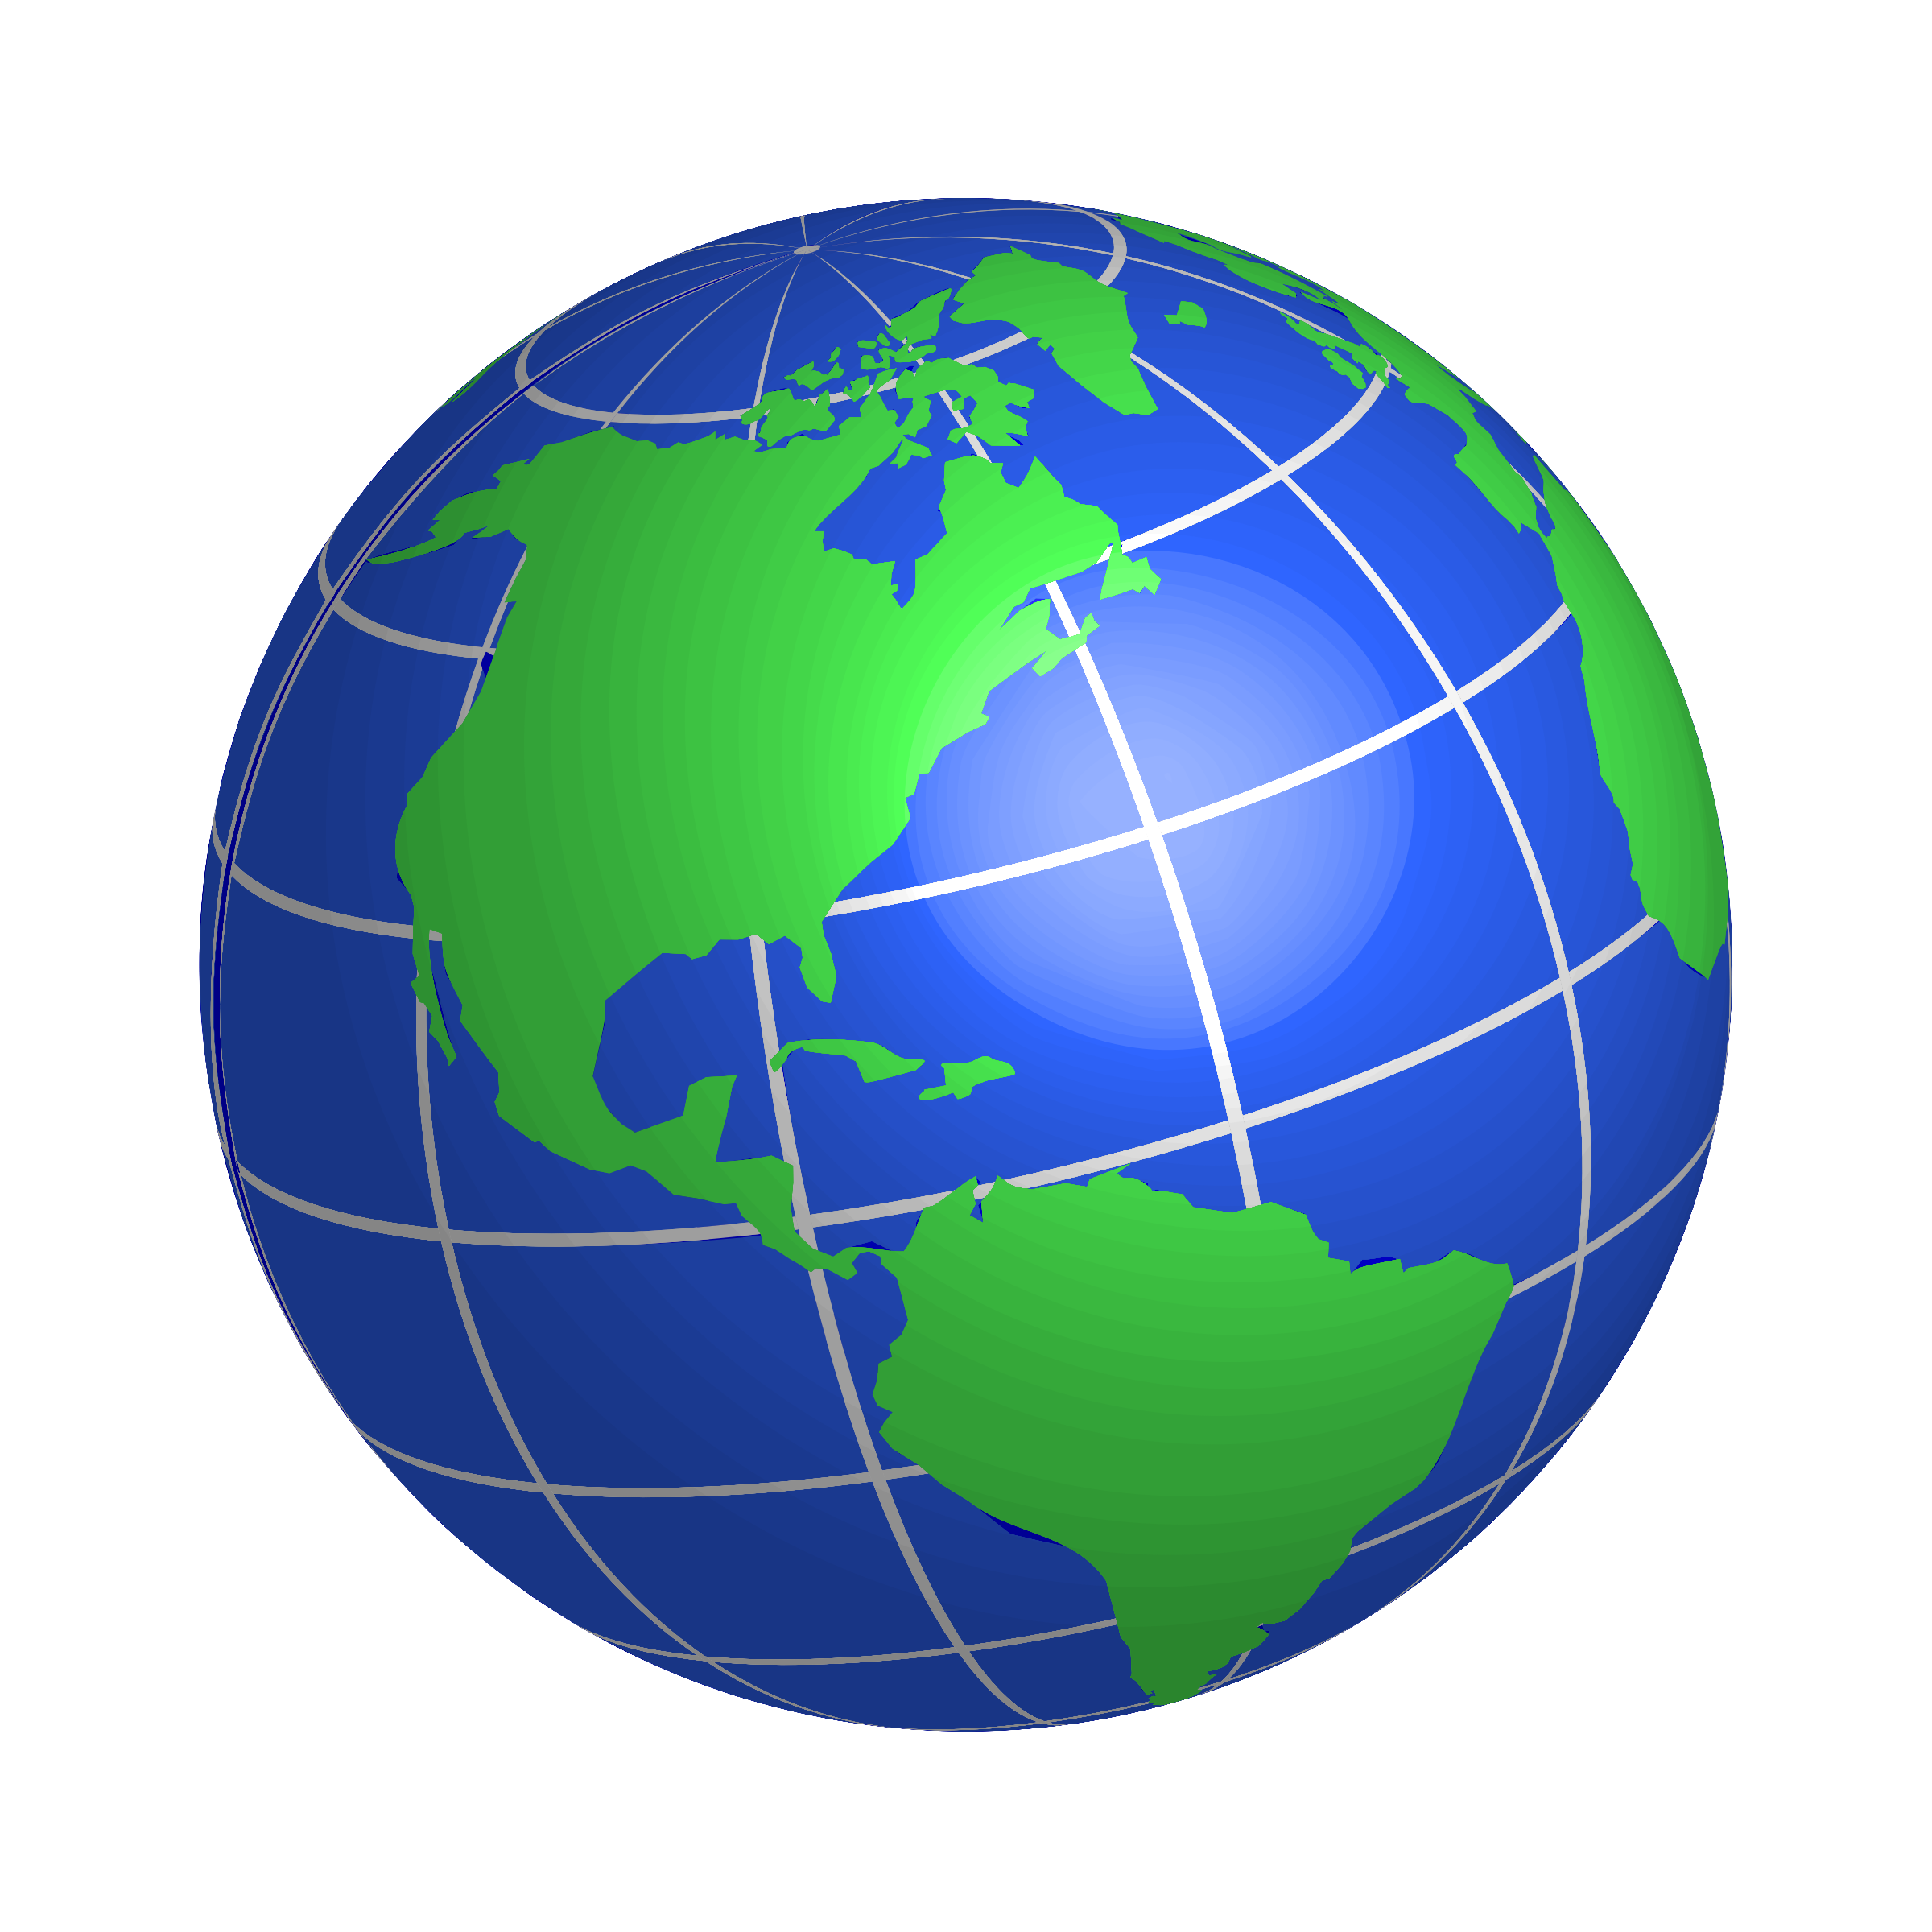 Earth globe clipart free images 3 clipart